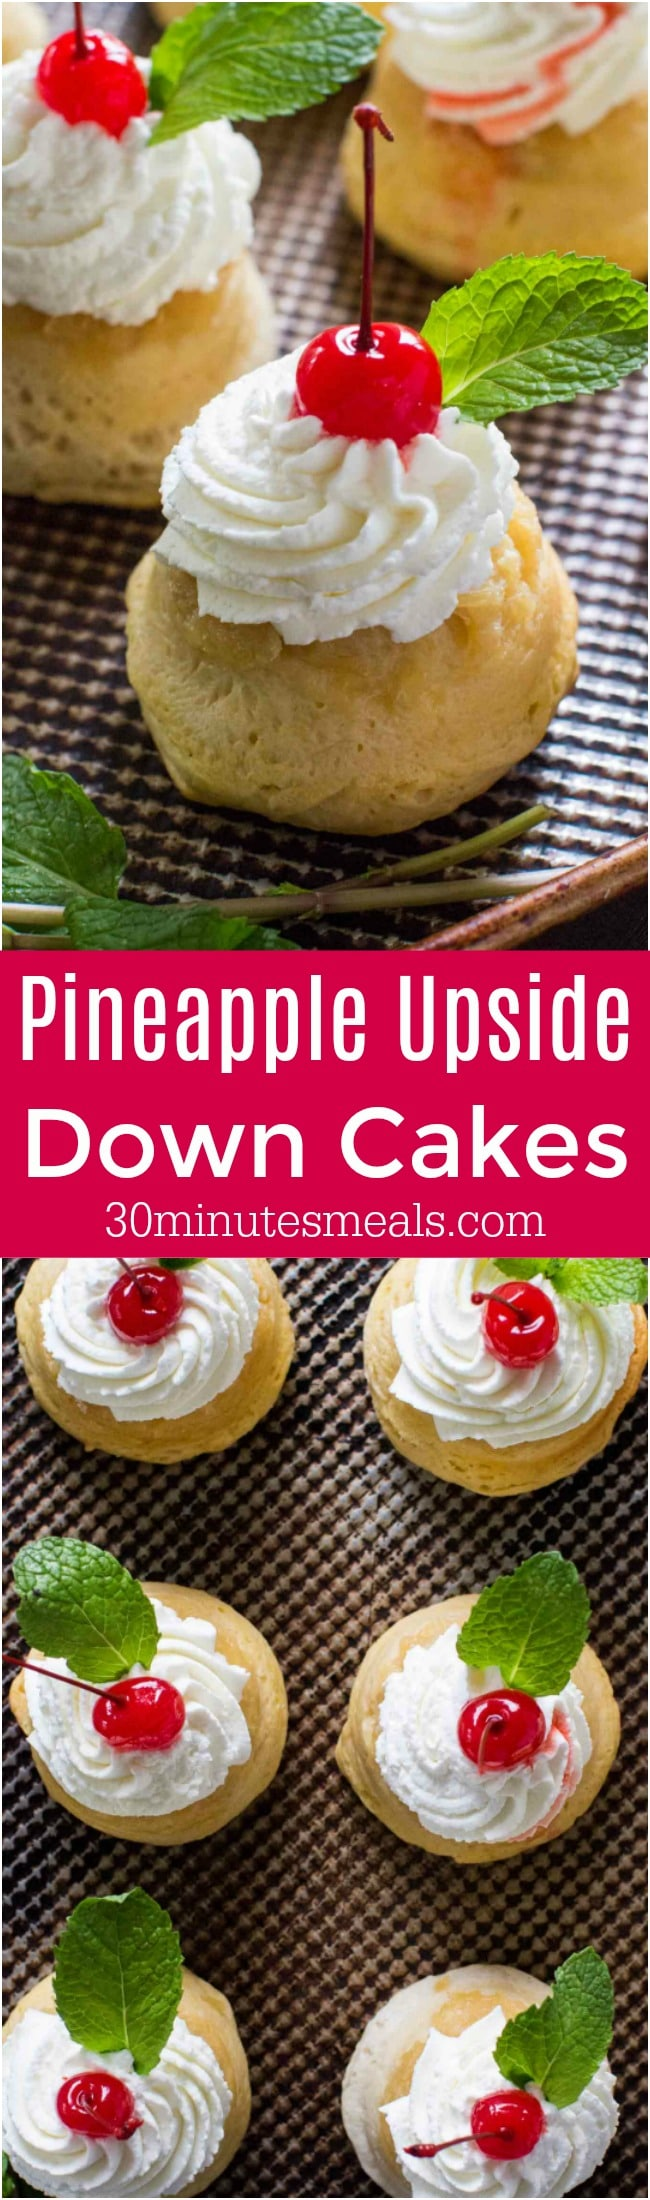 Pineapple Upside Down Cakes turns making dessert into a fun task! These cakes are made with biscuit dough and are ready in 30 minutes!